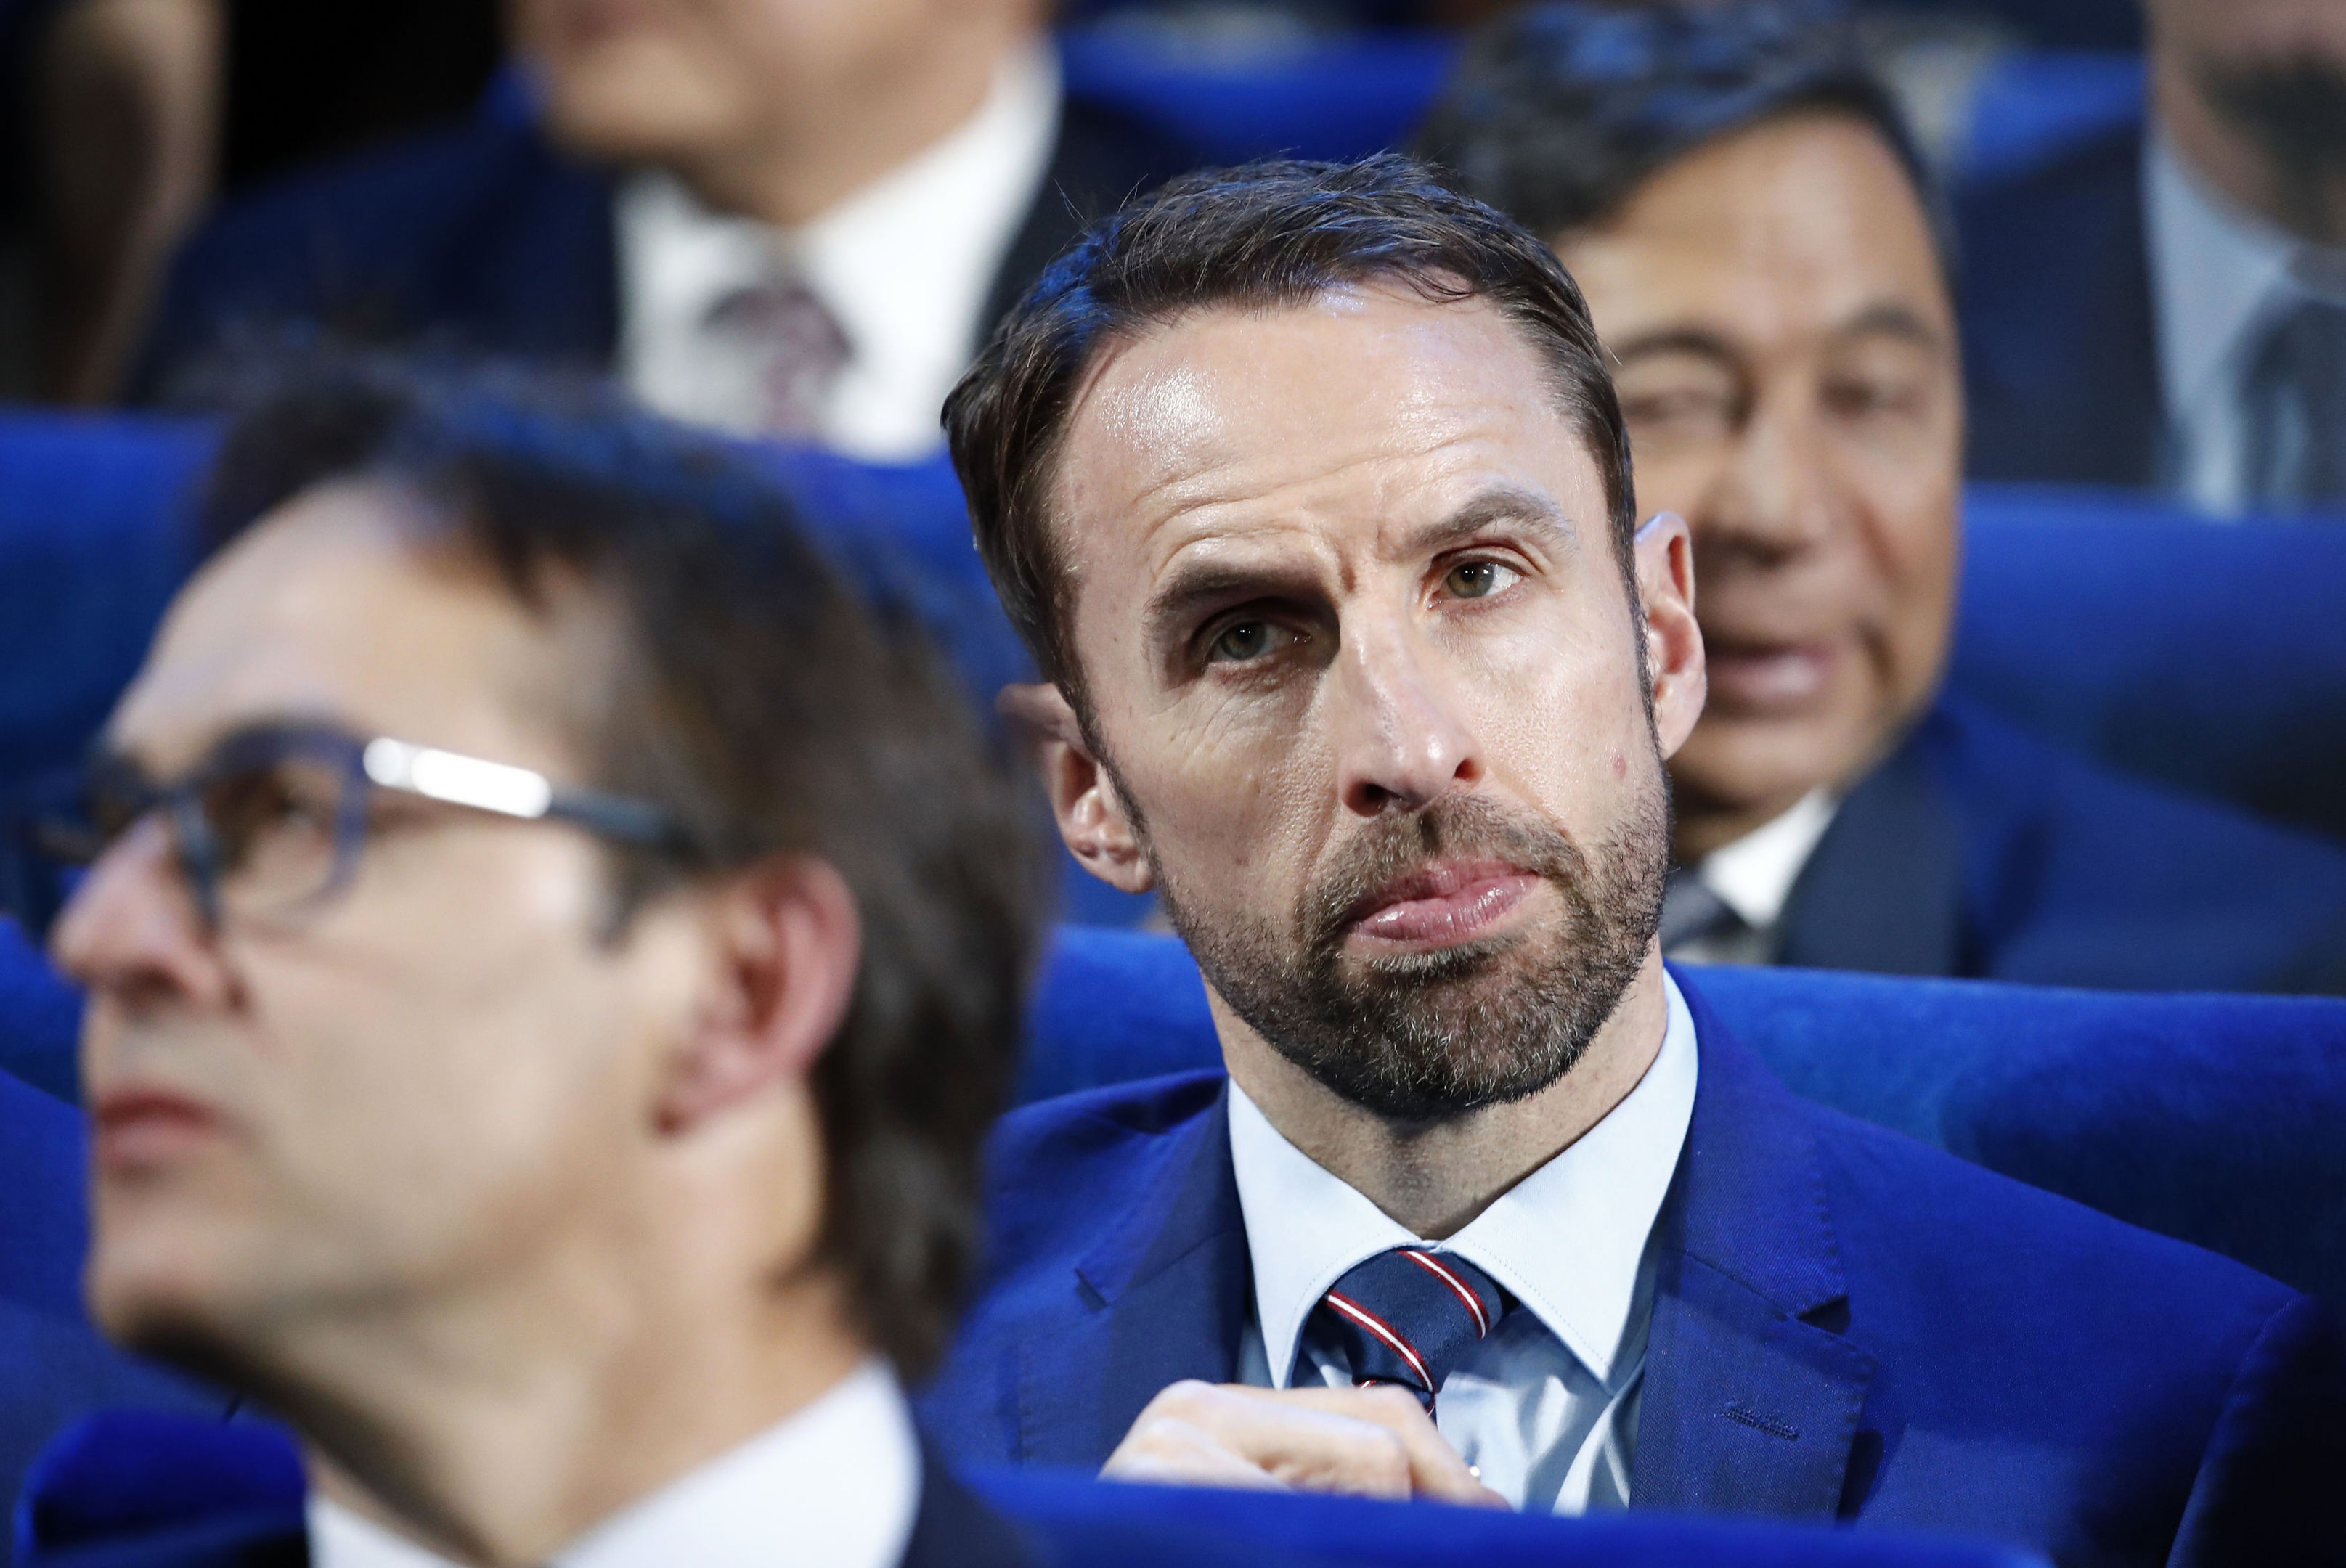 Gareth Southgate attends the 2018 World Cup draw (AP Photo/Pavel Golovkin)